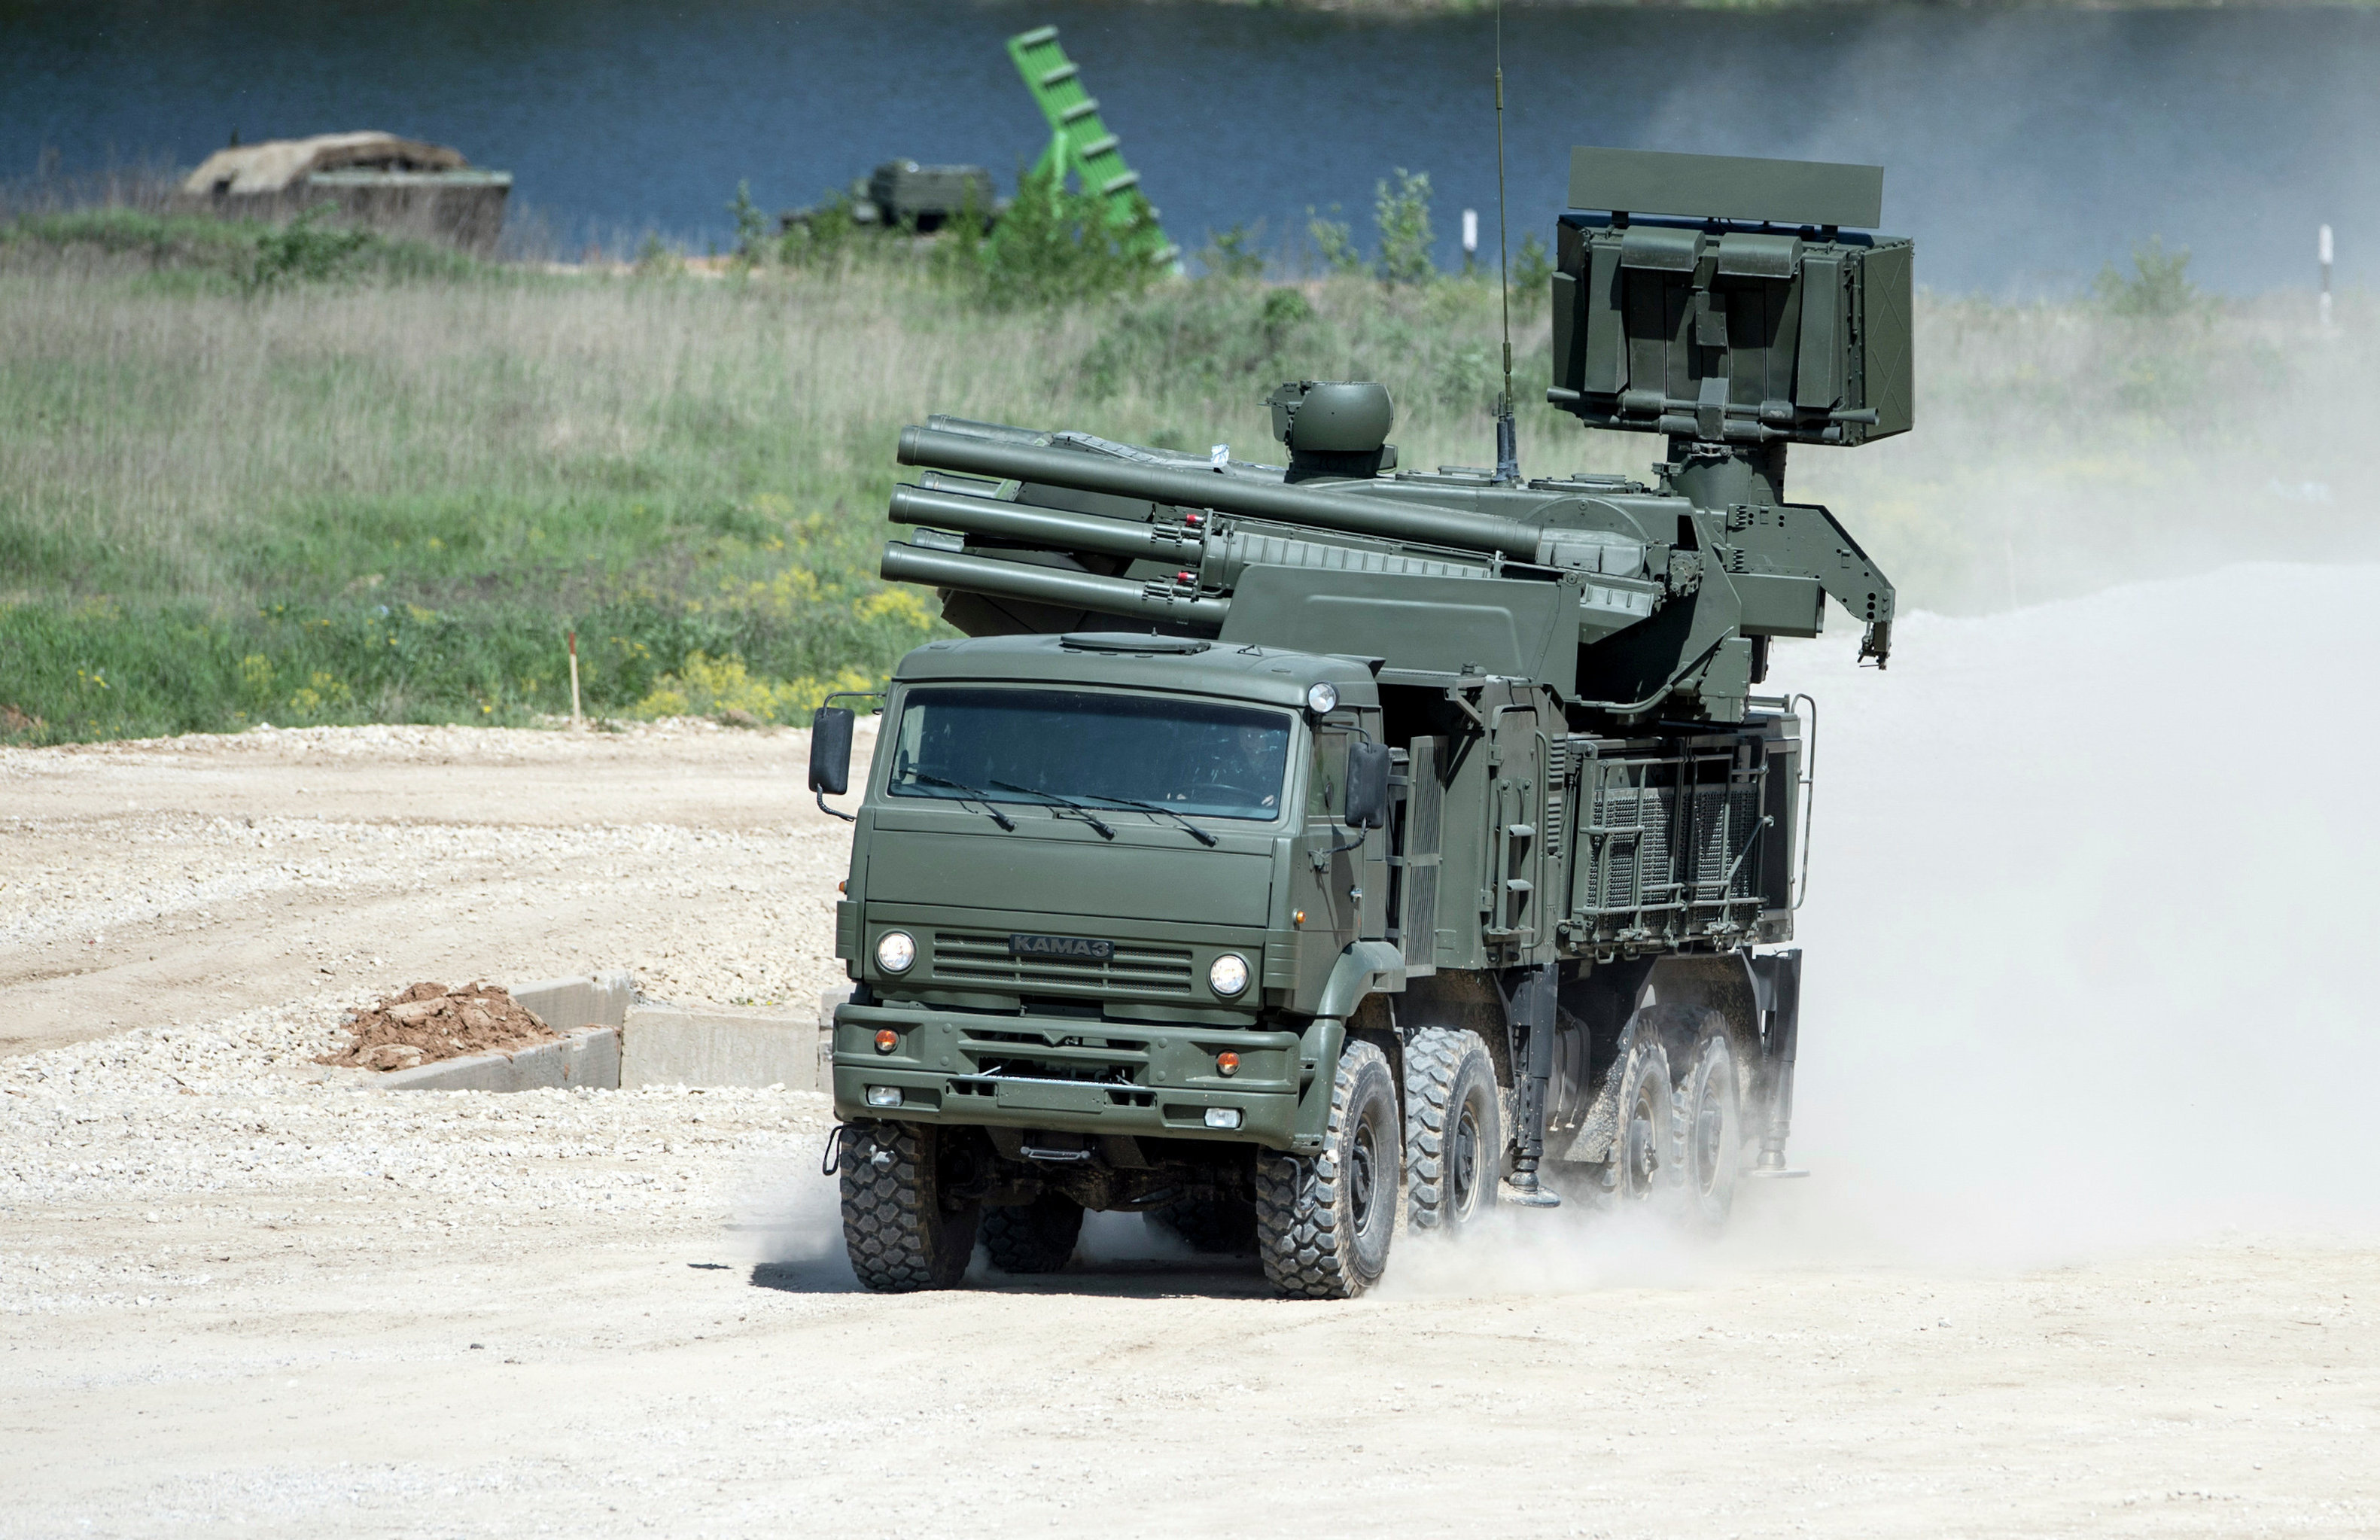 A KAMAZ-6560 truck with a Pantsir-S antiaircraft gun / surface-to-air missile system. File photo